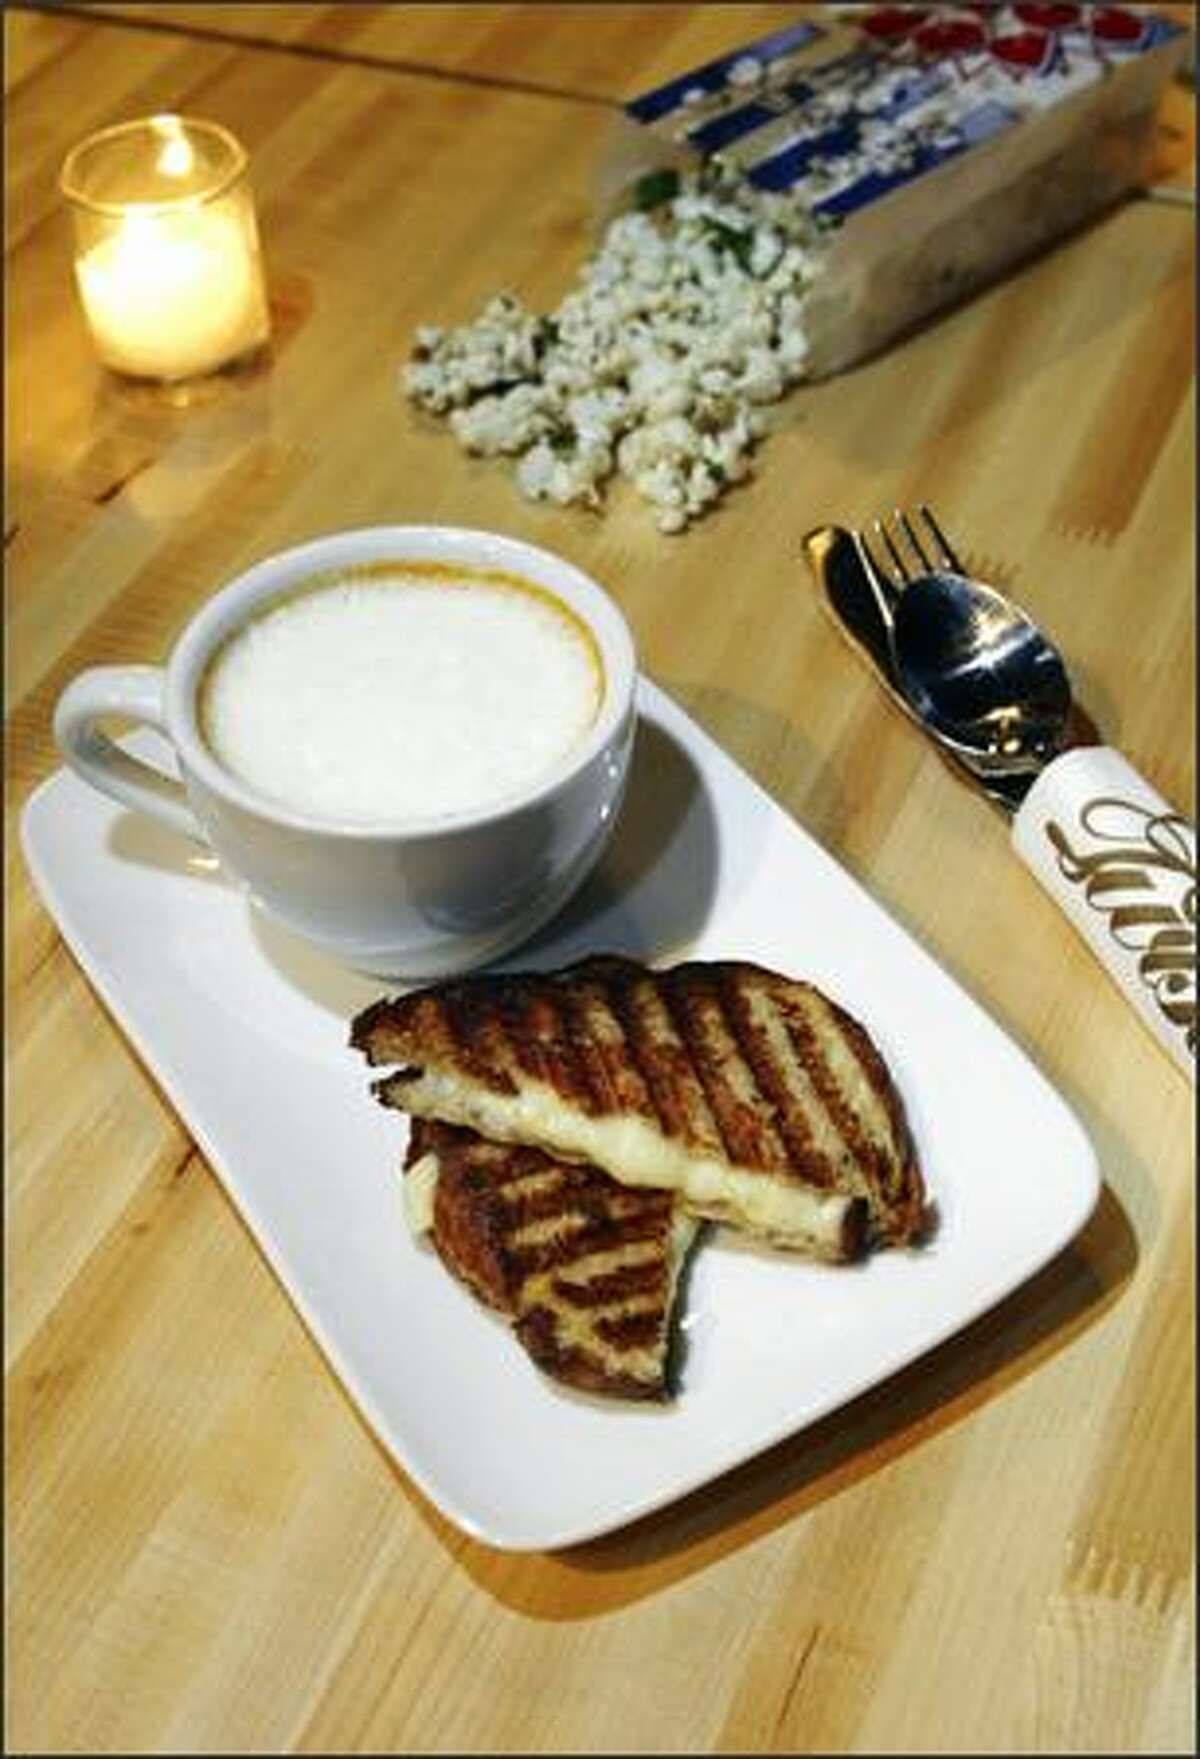 Tomato Cappuccino at Oliver's Twist is a creamy homemade soup served with a grilled cheese on toasted brioche.